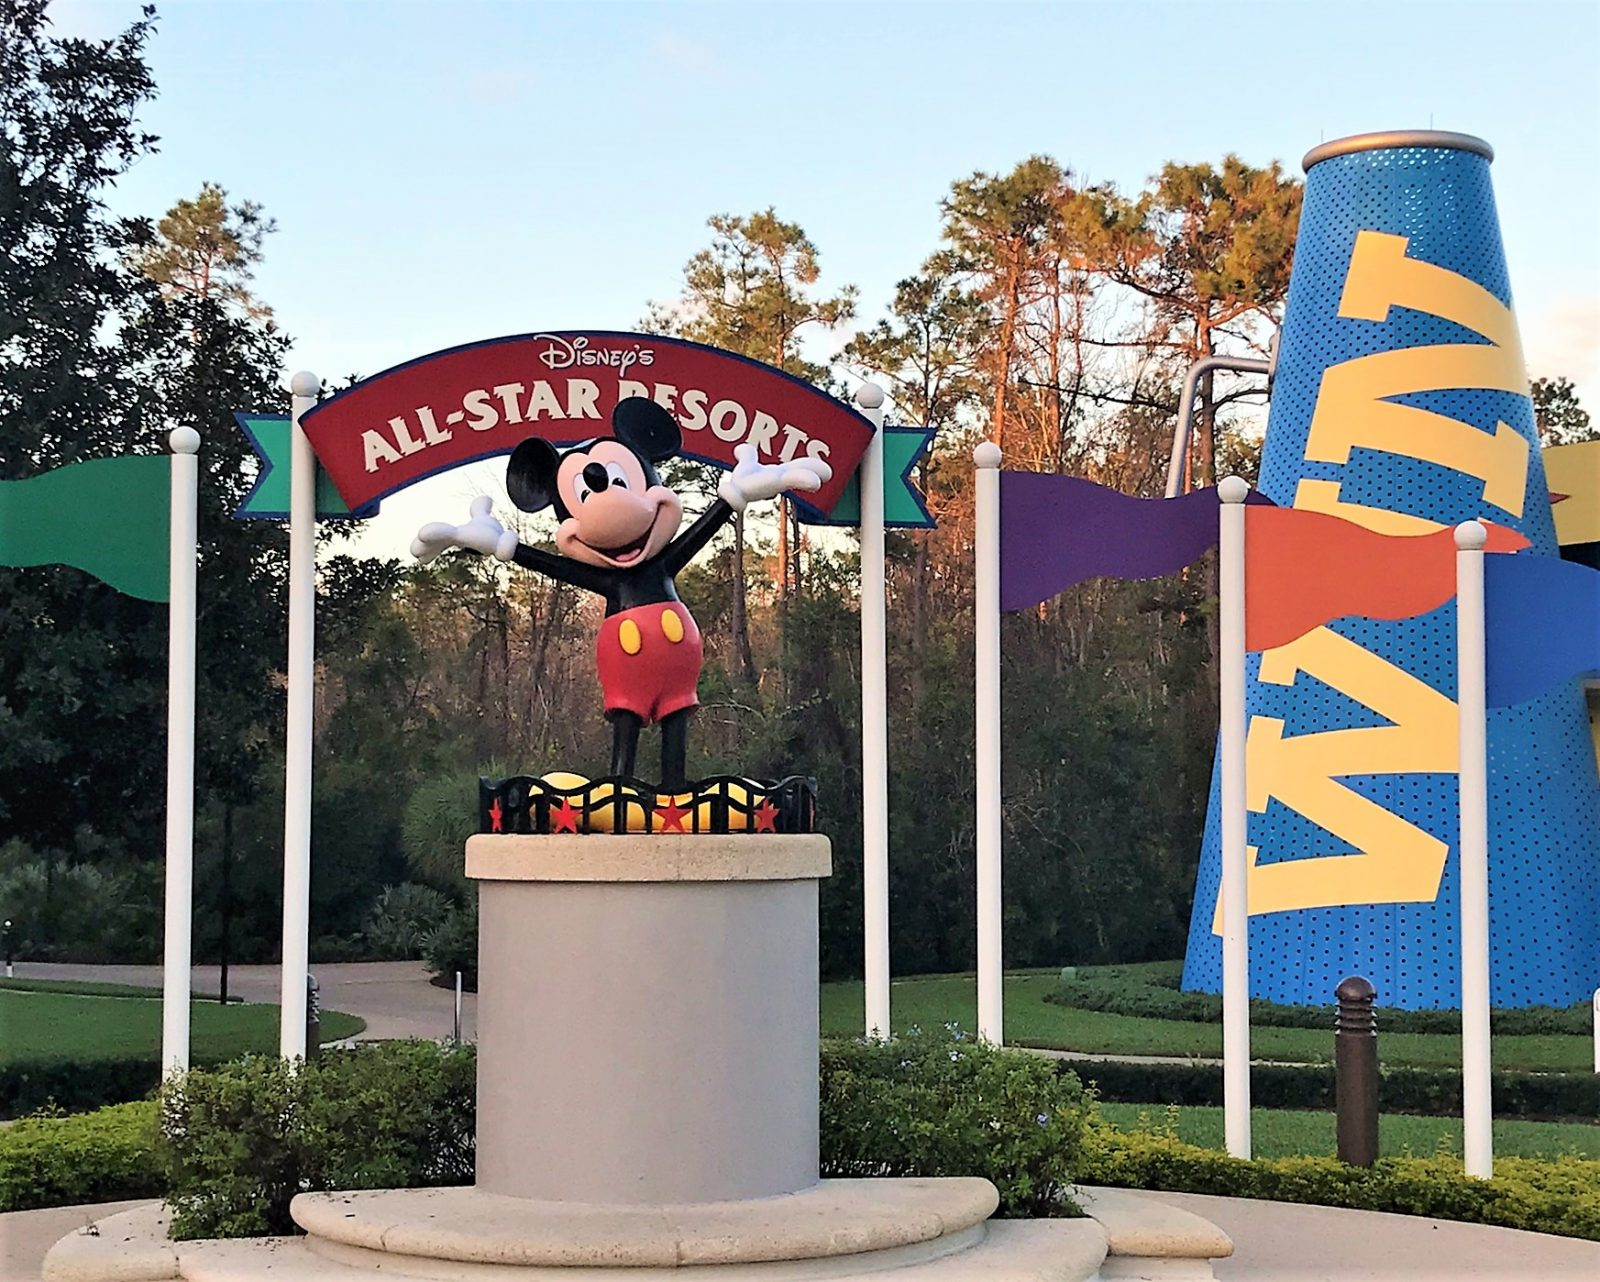 hack for staying at Disney's all-star sports on the cheap